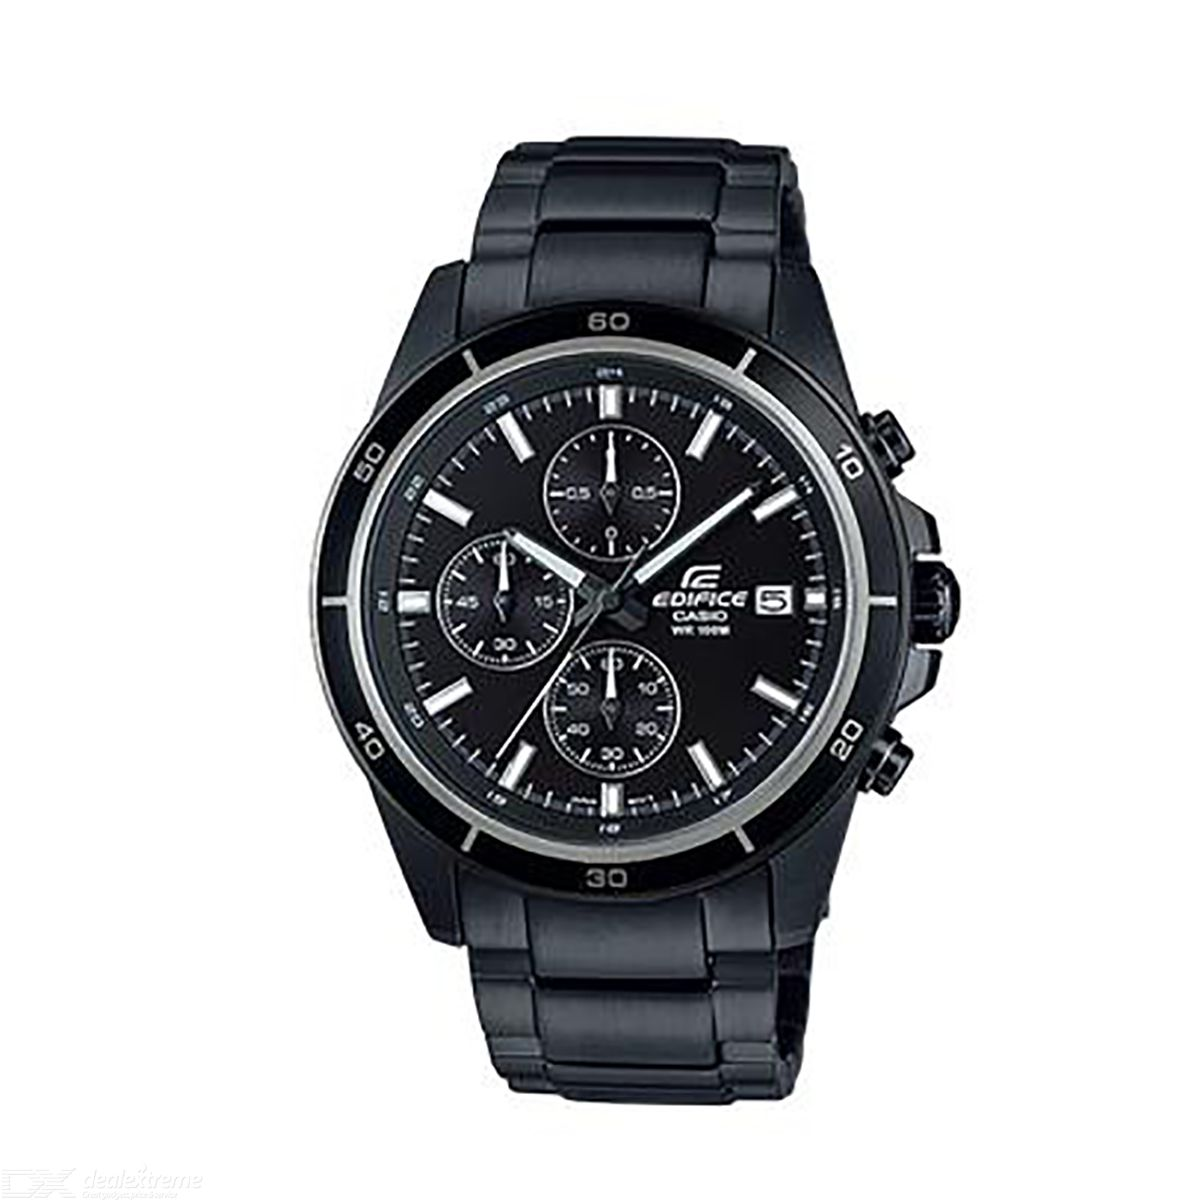 Casio Edifice Chronogtaph EFR-526BK-1A1 Men's Watch - Black